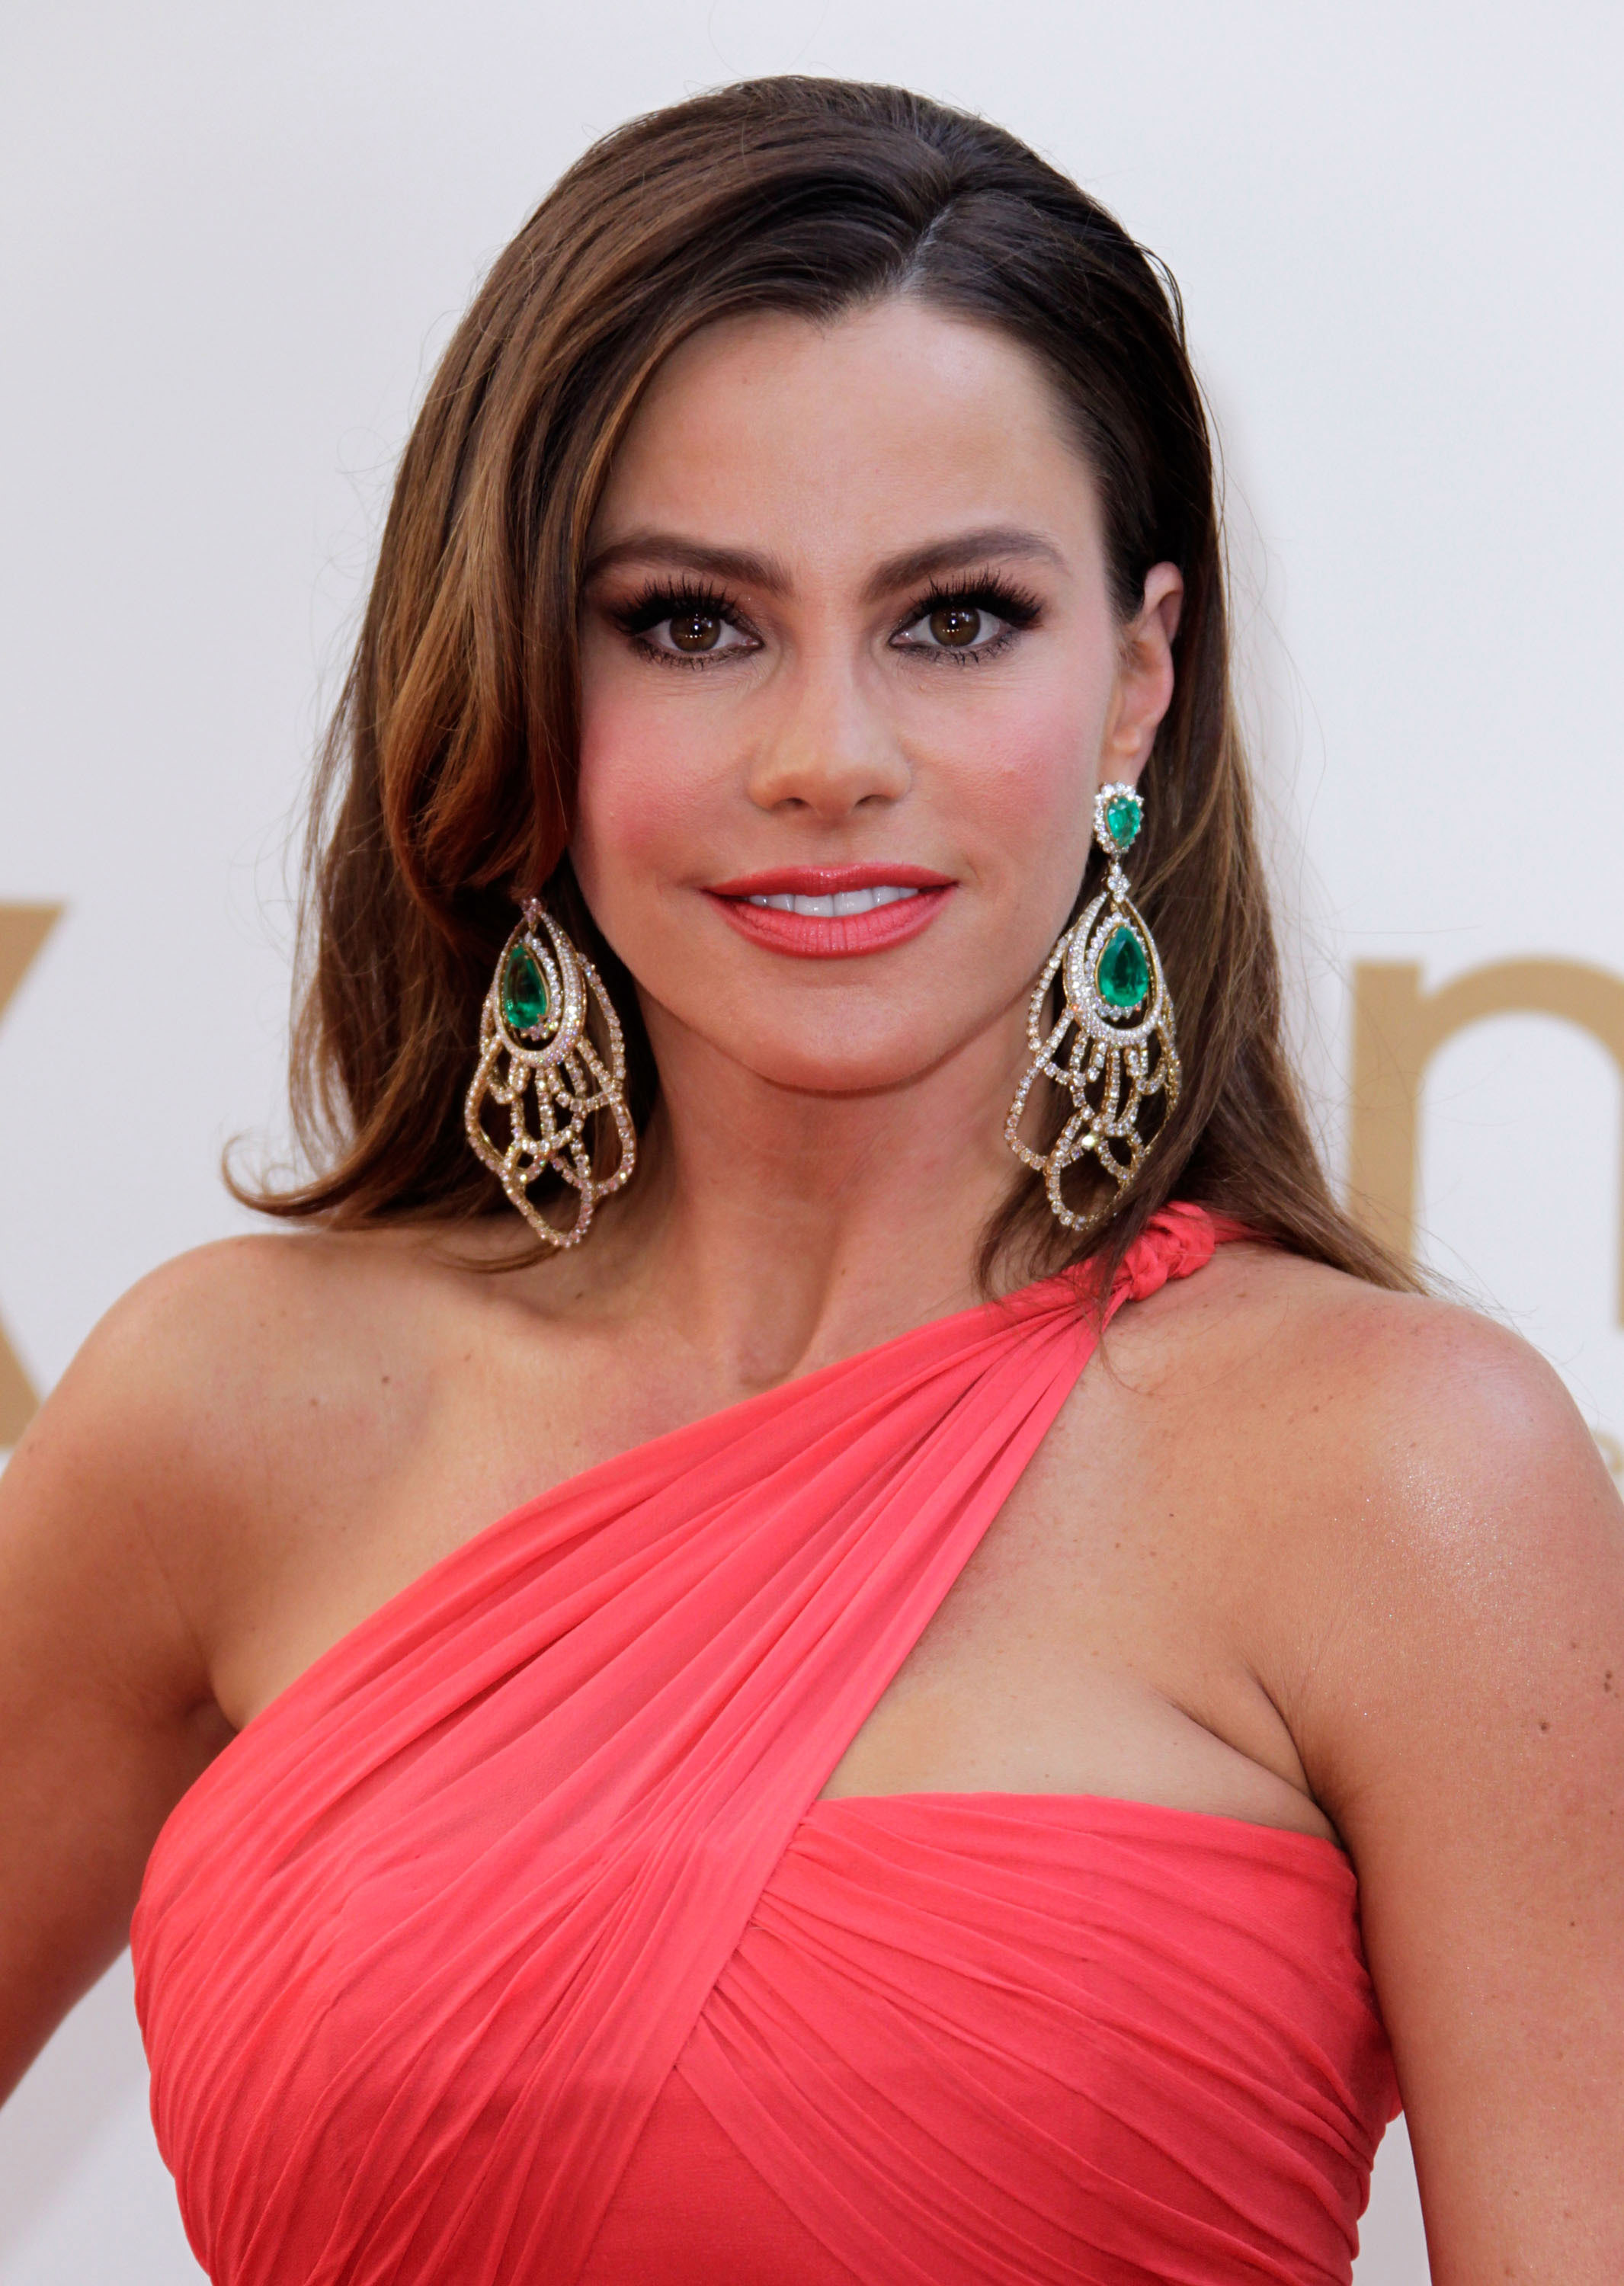 Actress Sofia Vergara arrives to the 63rd Primetime Emmy Awards at the Nokia Theatre L.A. Live on September 18, 2011 in Los Angeles, United States. 63rd Primetime Emmy Awards - Arrivals Nokia Theatre L.A. Live Los Angeles, CA United States September 18, 2011 Photo by Jeff Vespa/WireImage.com To license this image (125597075), contact WireImage.com